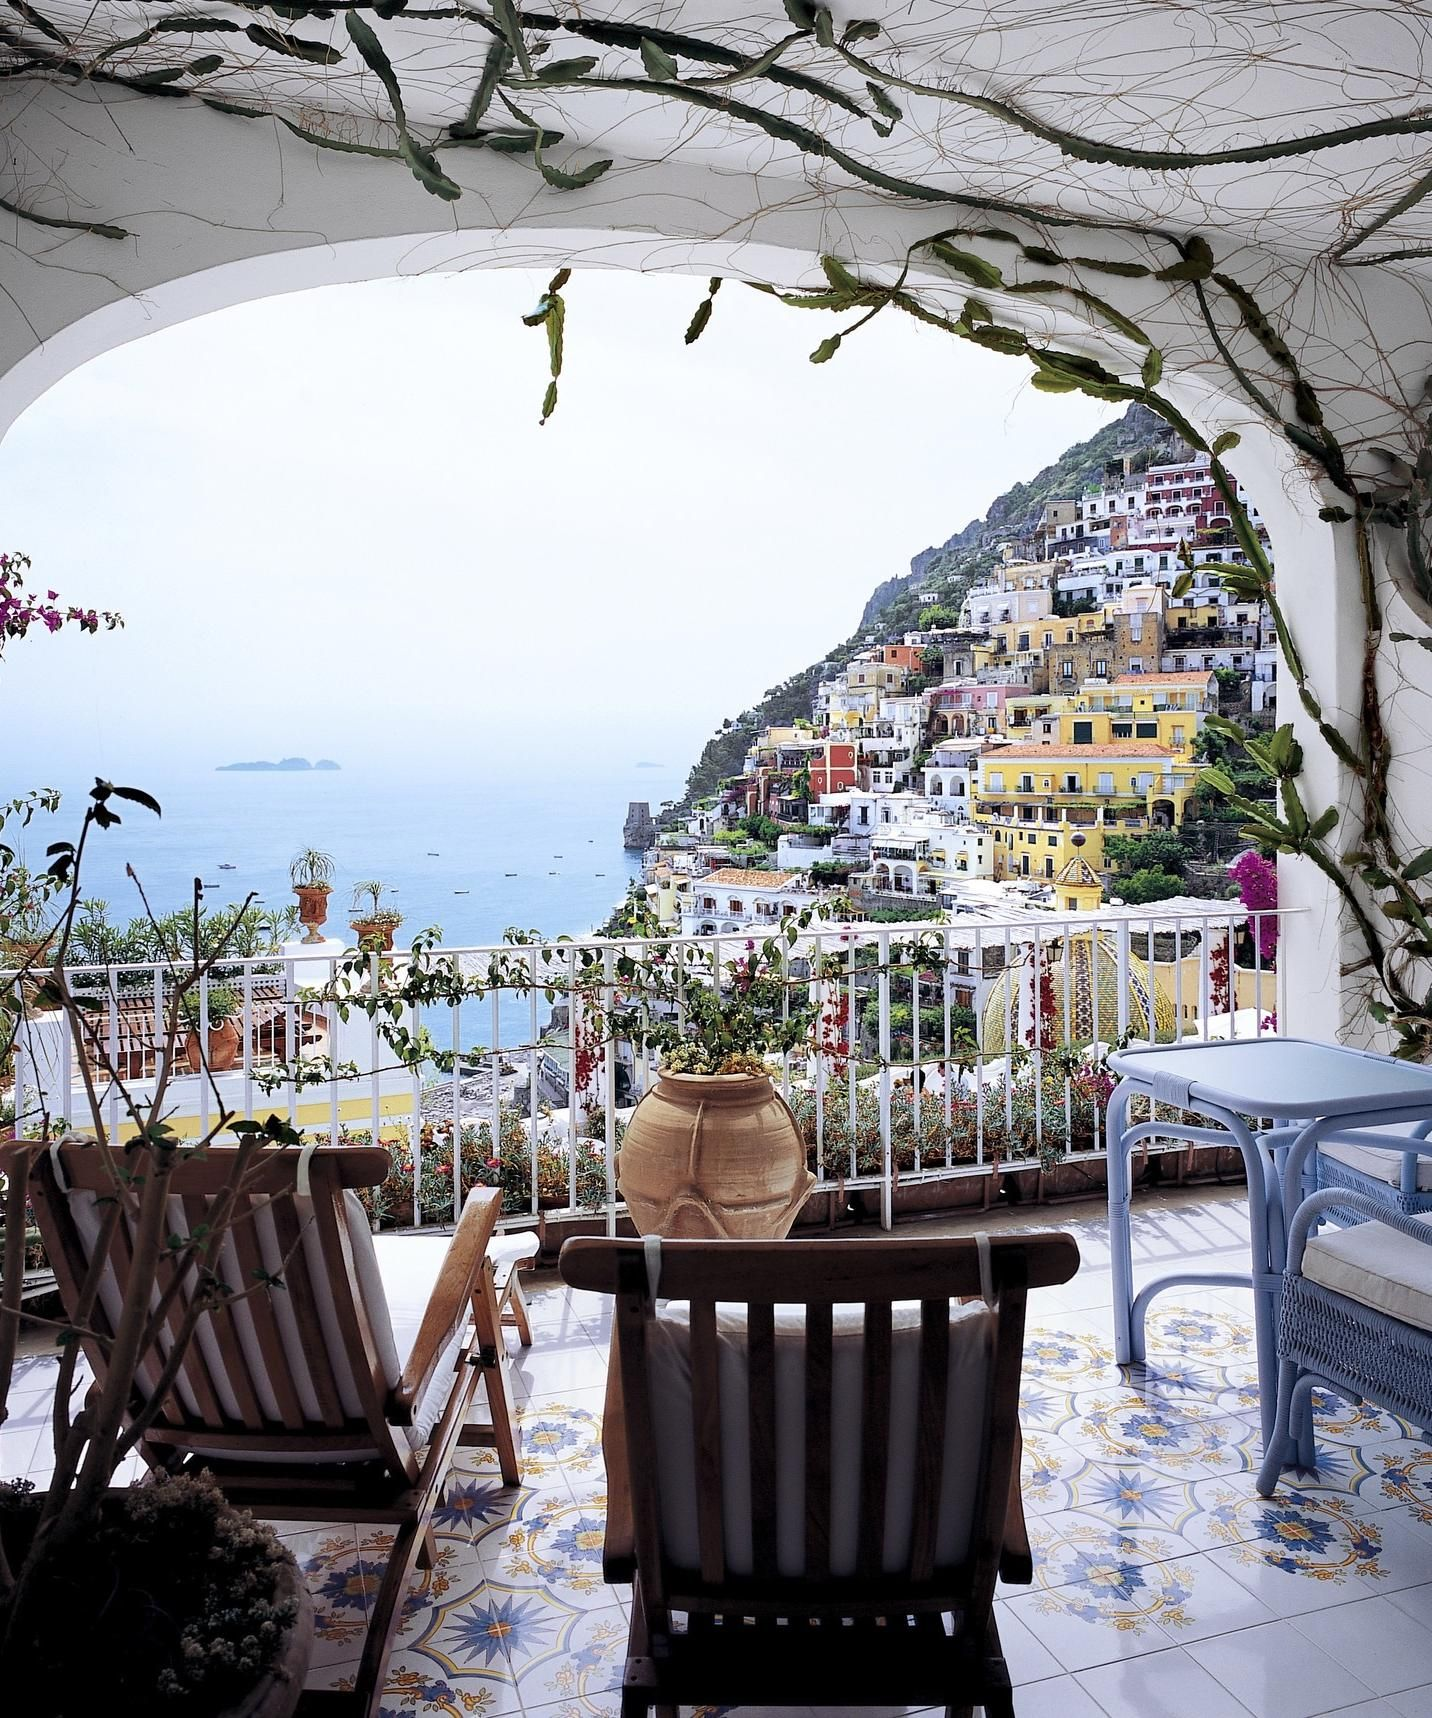 The. Beautiful Le Sirenuse, Positano, Italy.